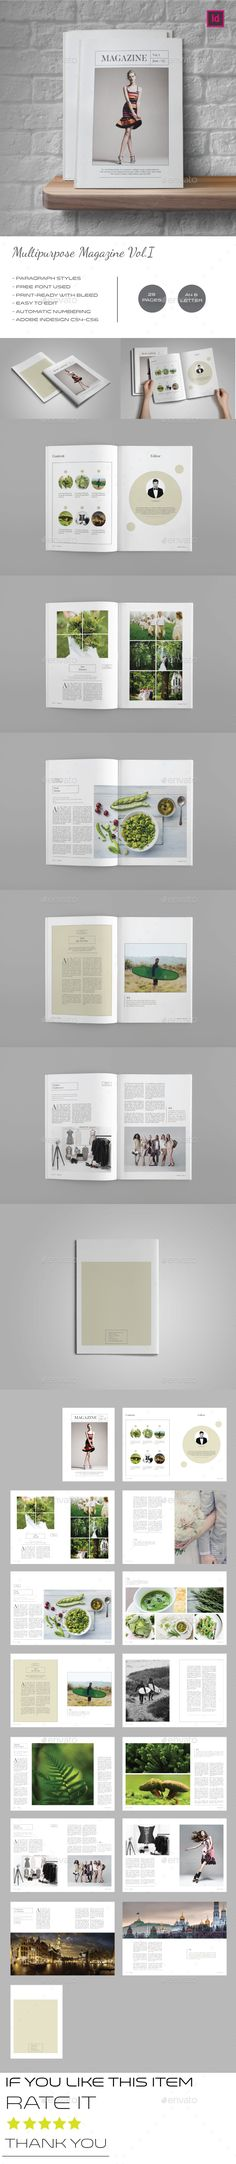 Multipurpose Magazine Template Vol.I - Magazines Print Templates Download here : https://graphicriver.net/item/multipurpose-magazine-template-voli/16825632?s_rank=159&ref=Al-fatih